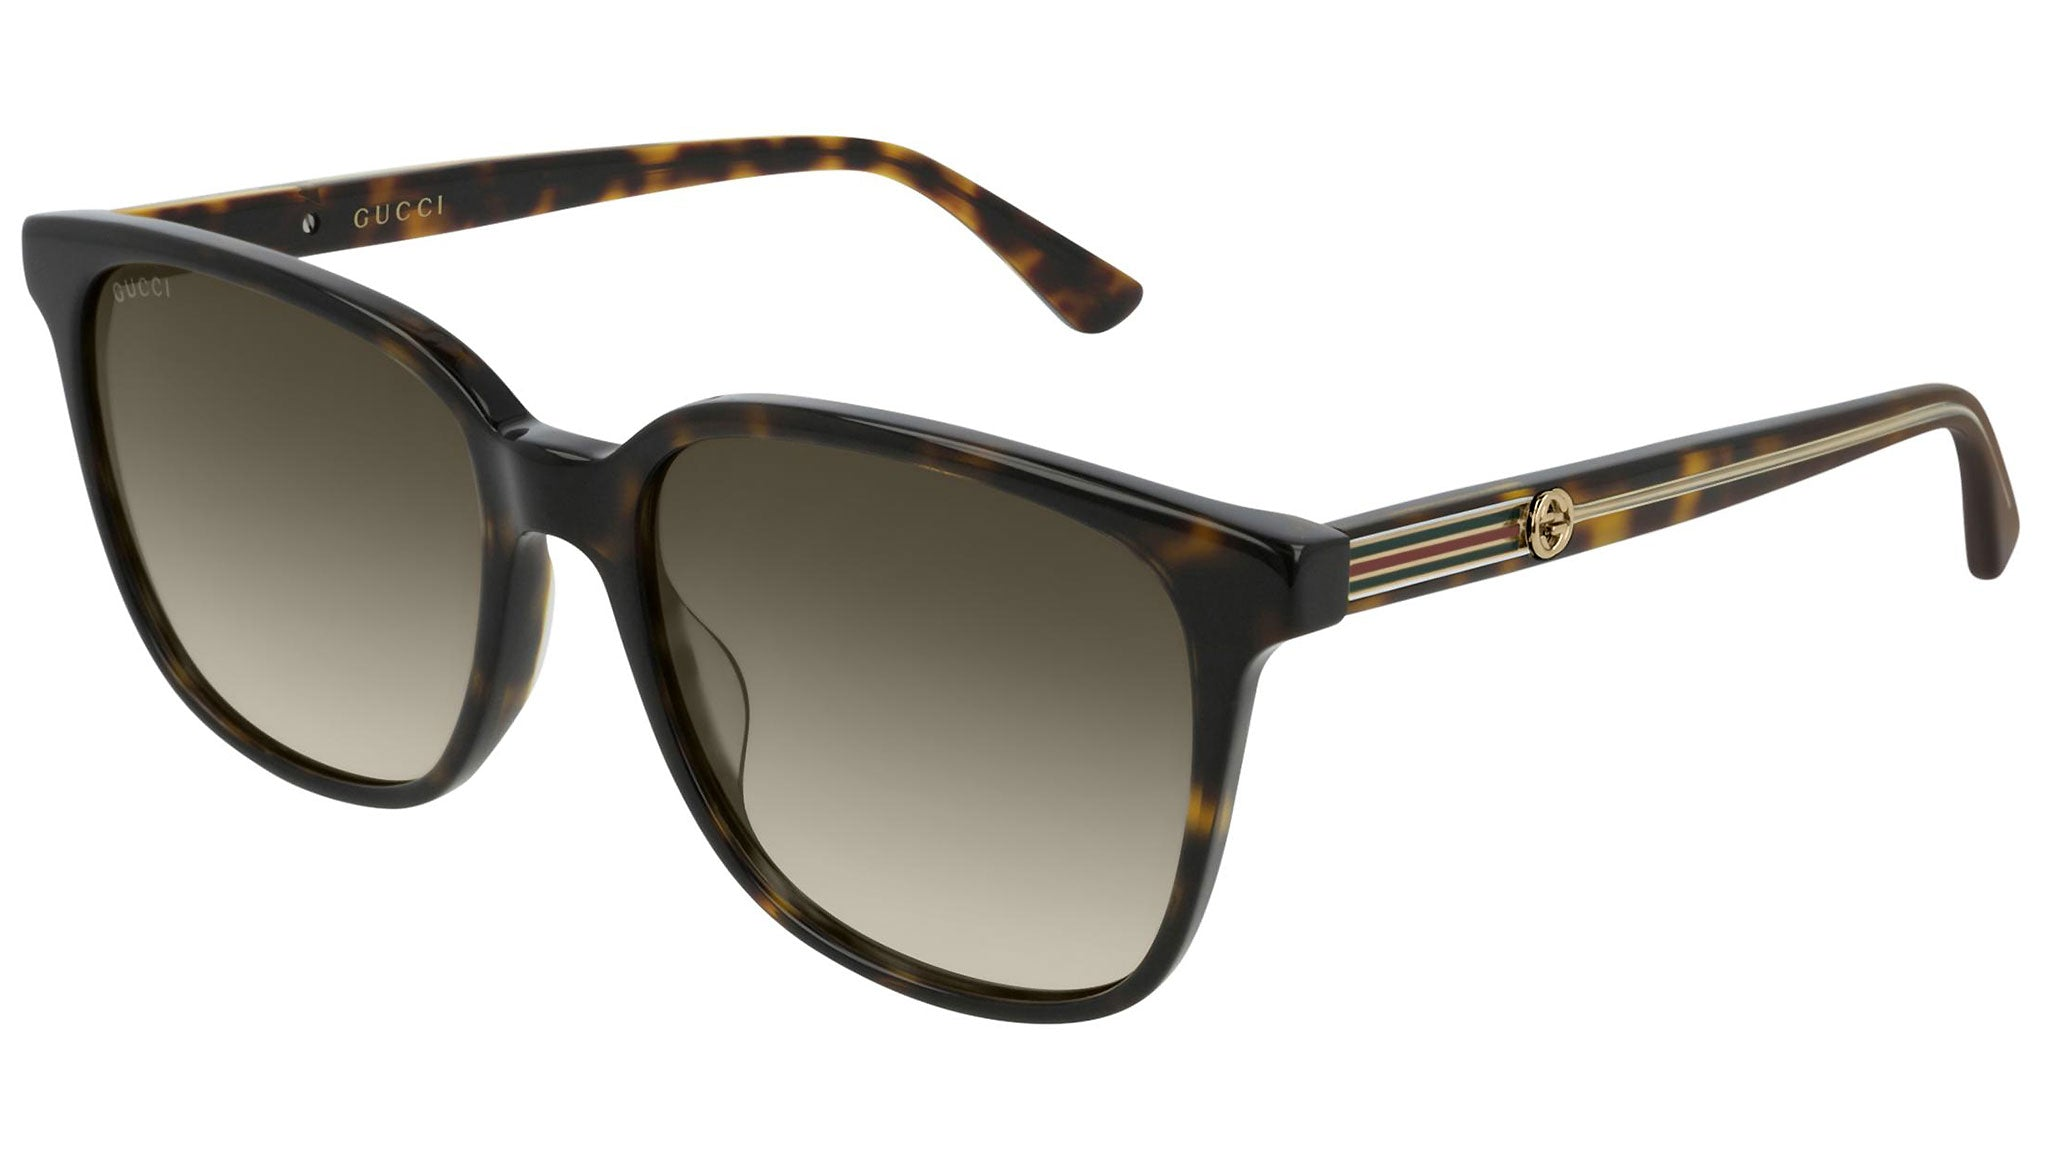 GG0376S dark havana and brown